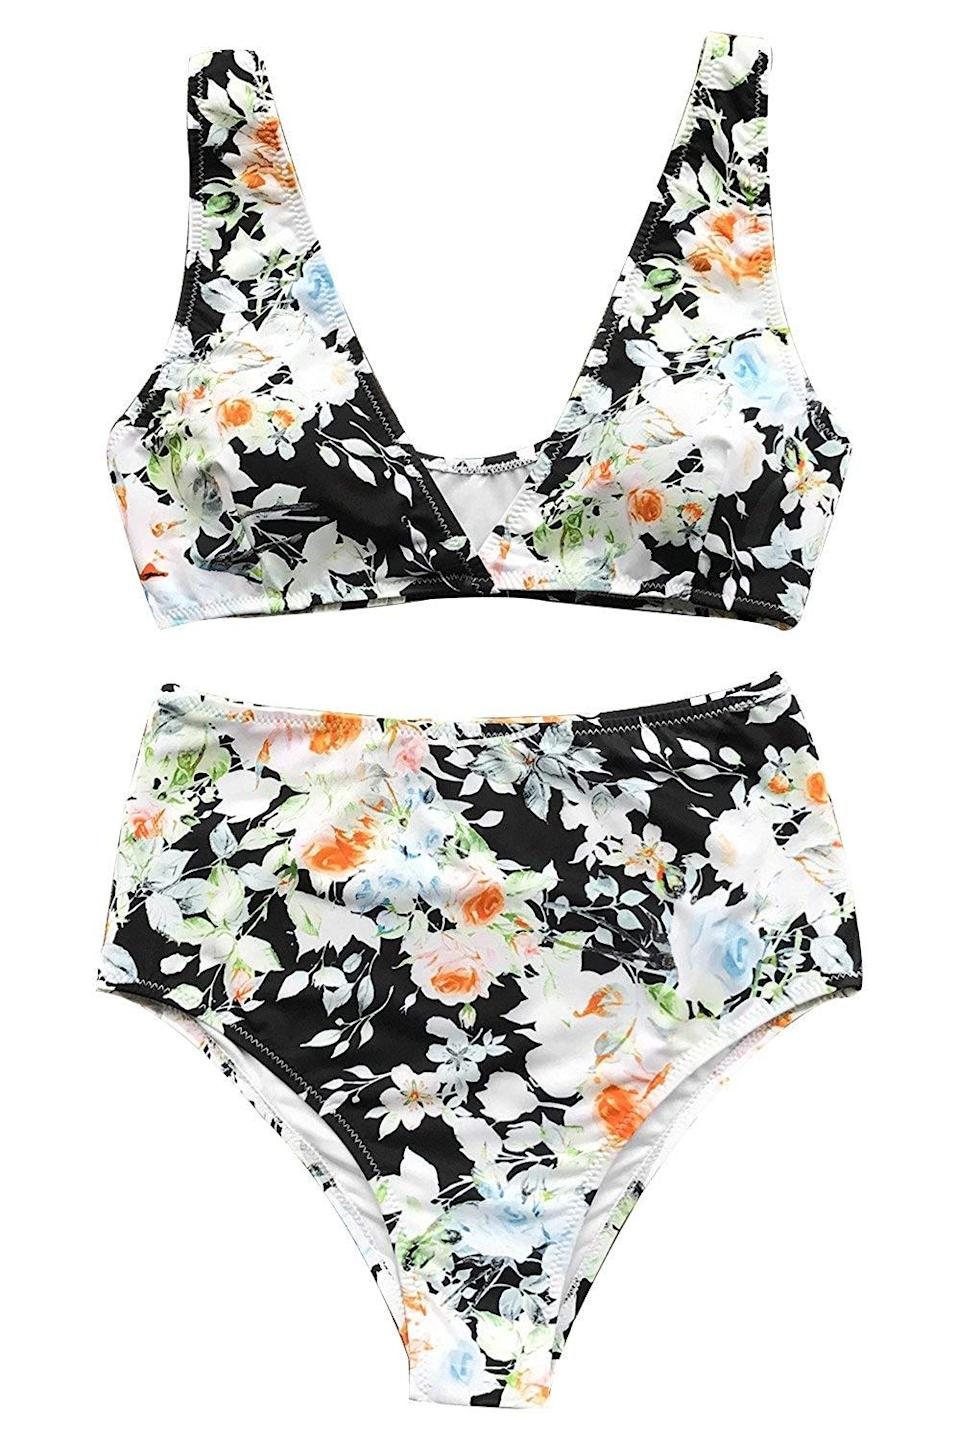 """We're suckers for a good floral print, especially when it has 4 out of 5 stars. Customers praised the brief's coverage: """"The bottom fits great, and my butt isn't hanging out, which is always a good thing,"""" according to one reviewer.<br><br><strong>Cupshe</strong> Ditsy Floral Bikini, $, available at <a href=""""https://www.amazon.com/CUPSHE-Womens-Waisted-Bikini-Swimwear/dp/B075ZSVMLV/ref=sr_1_404?"""" rel=""""nofollow noopener"""" target=""""_blank"""" data-ylk=""""slk:Amazon"""" class=""""link rapid-noclick-resp"""">Amazon</a>"""